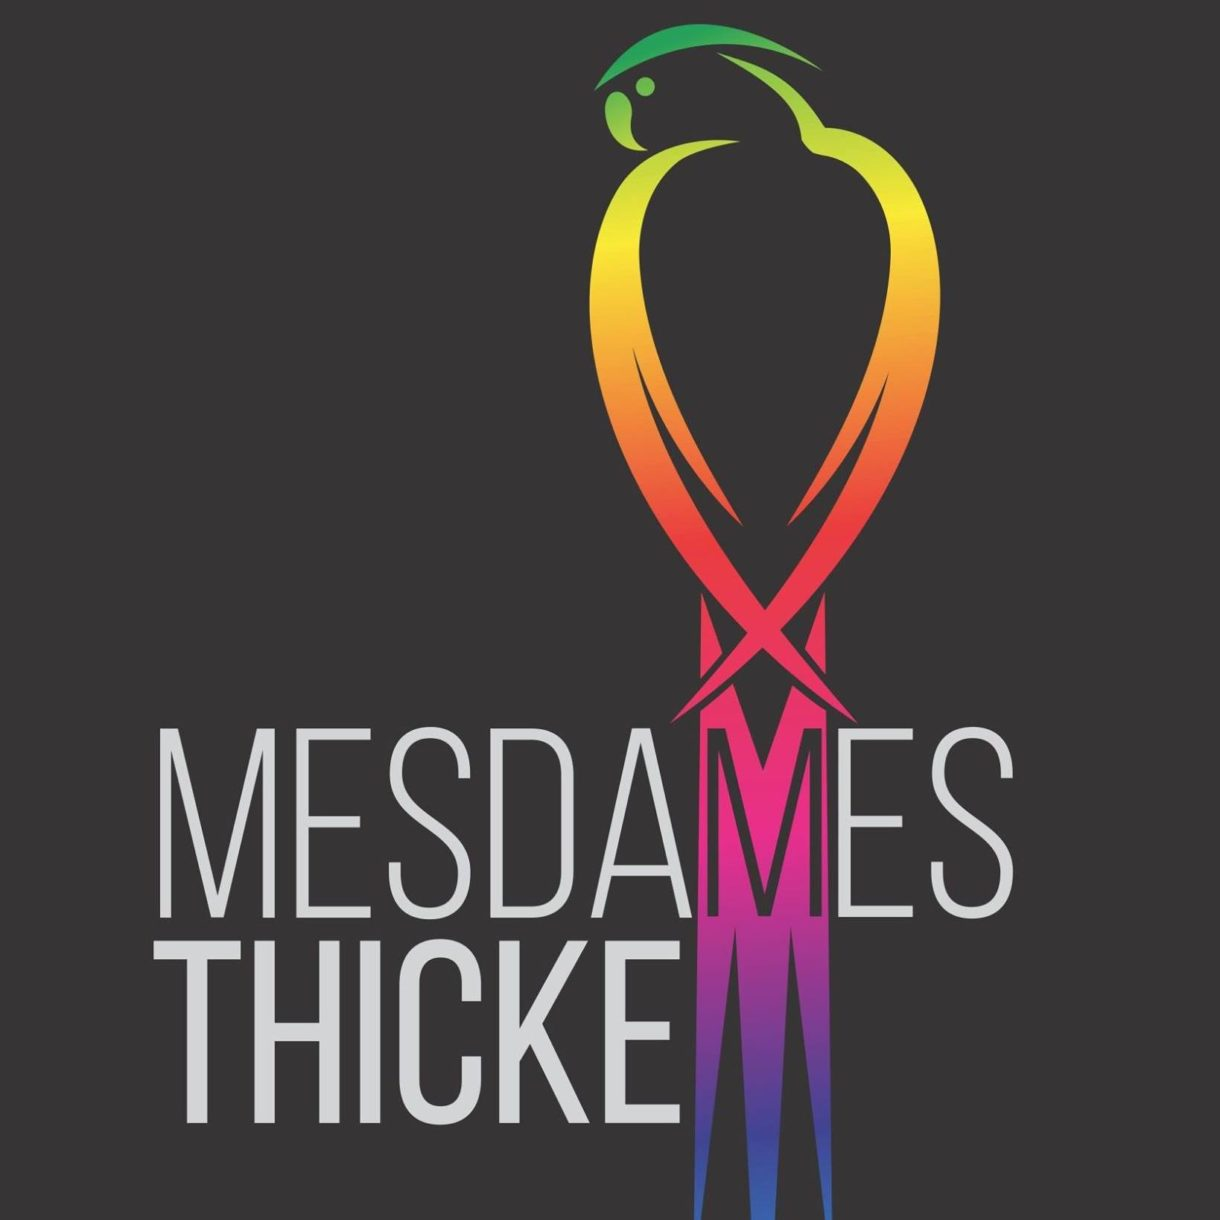 Mesdames Thicke